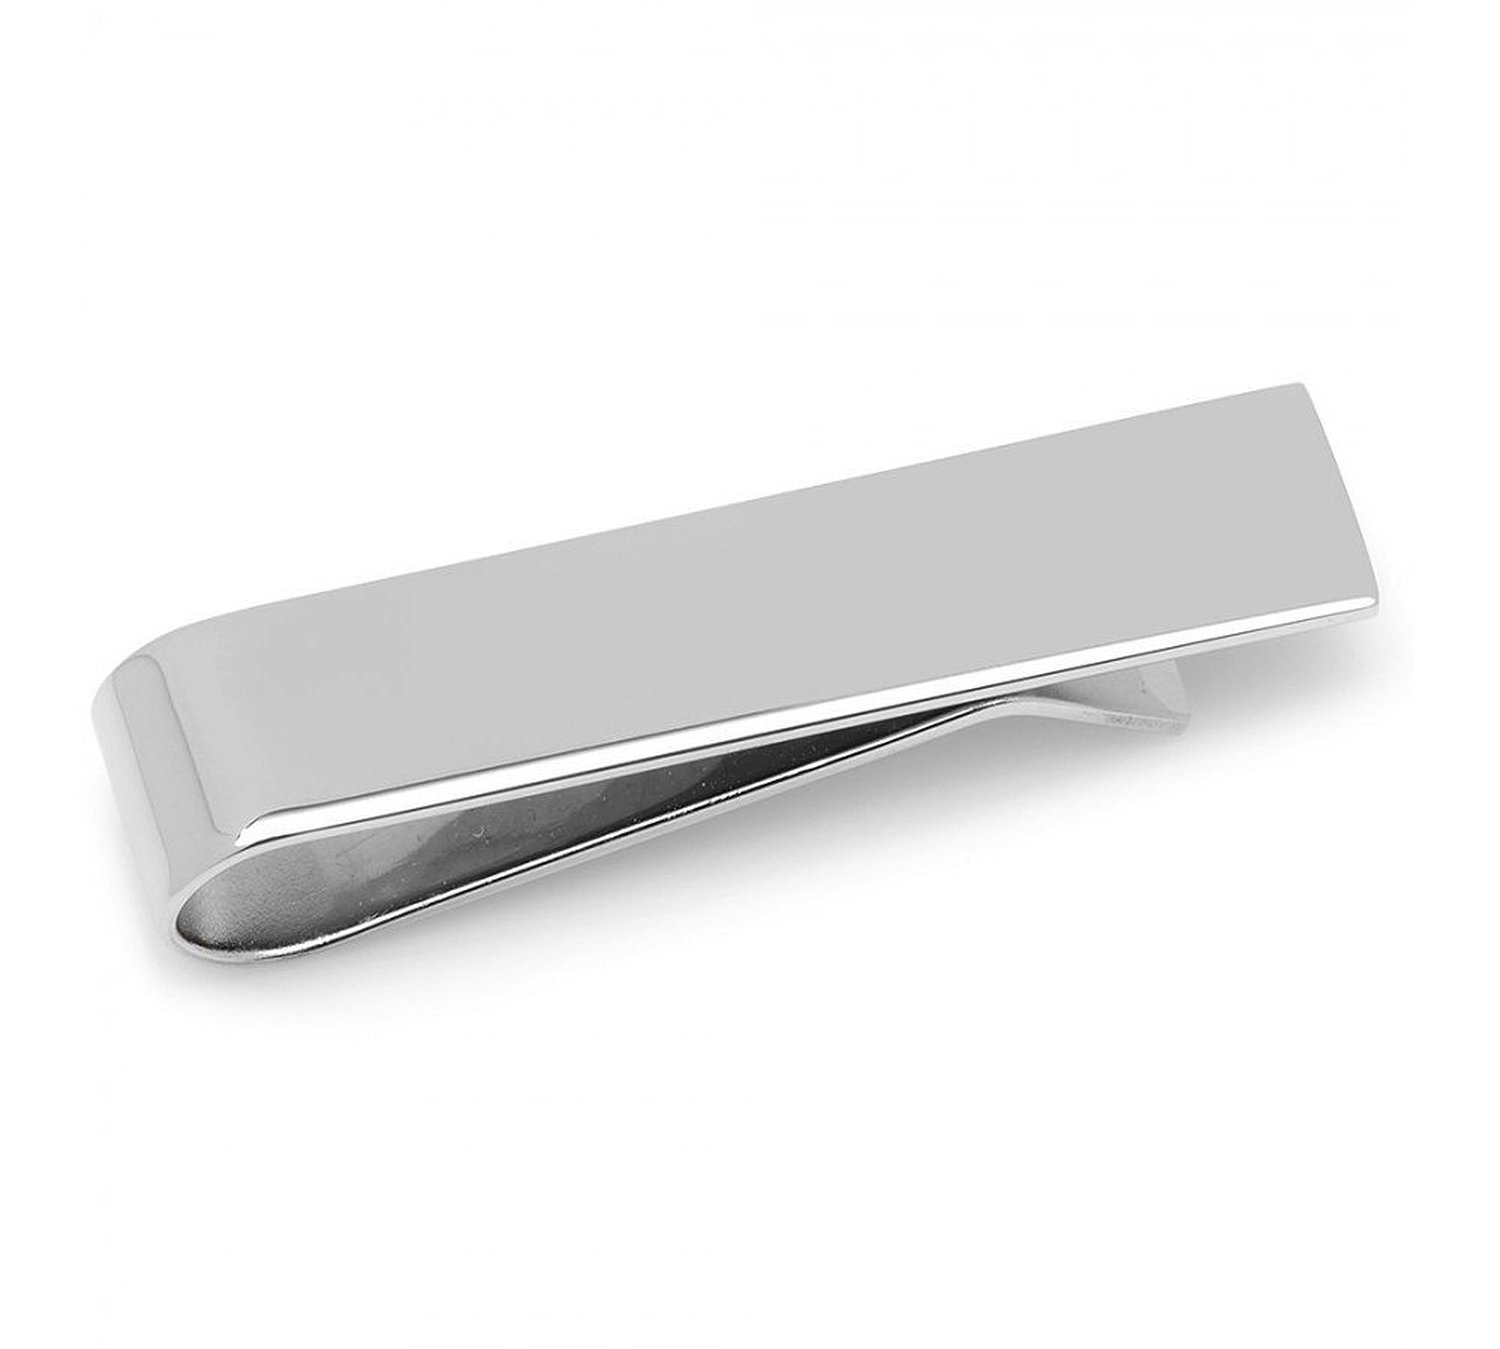 Best Modern Skinny Silver Tie Bar Clip, GIFT BOXED by Puentes Denver